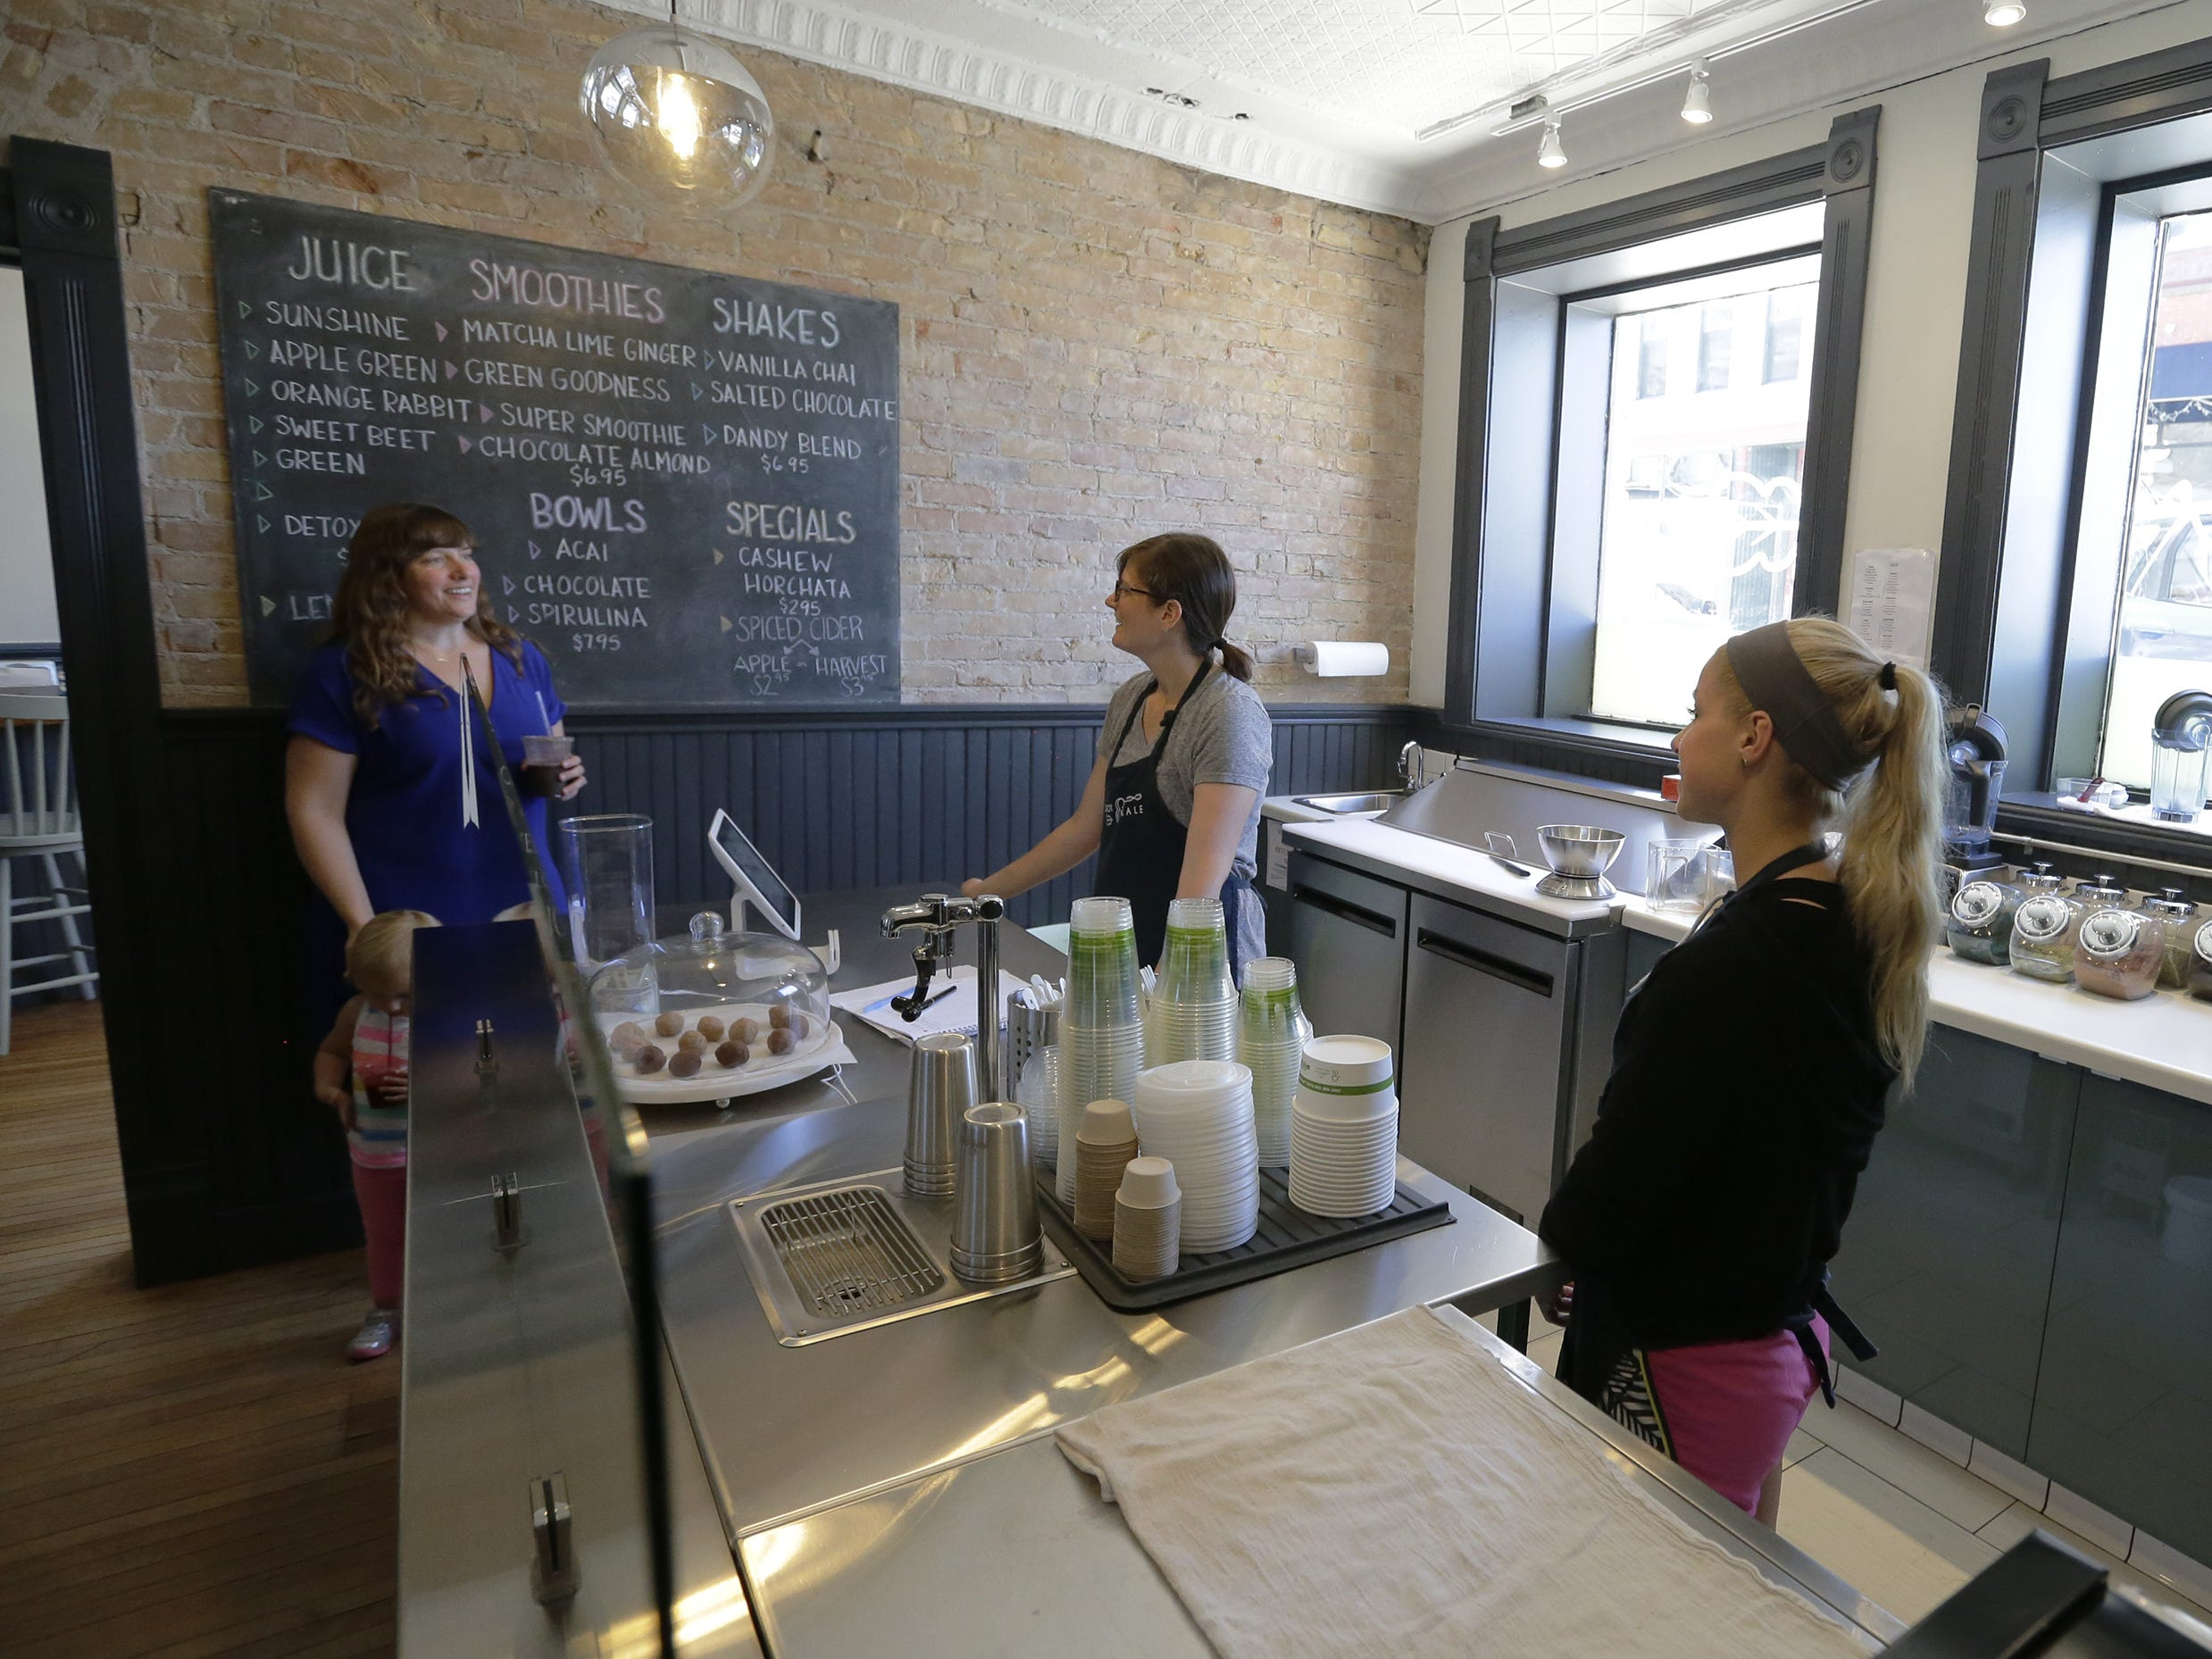 Carrot & Kale owner Megan Bartelt, from left, talks with Lauren Bartelt and Courtney Holland on Tuesday, Sept. 11, 2018, inside the organic juice bar and cafe, 110 Algoma Boulvard in Oshkosh.